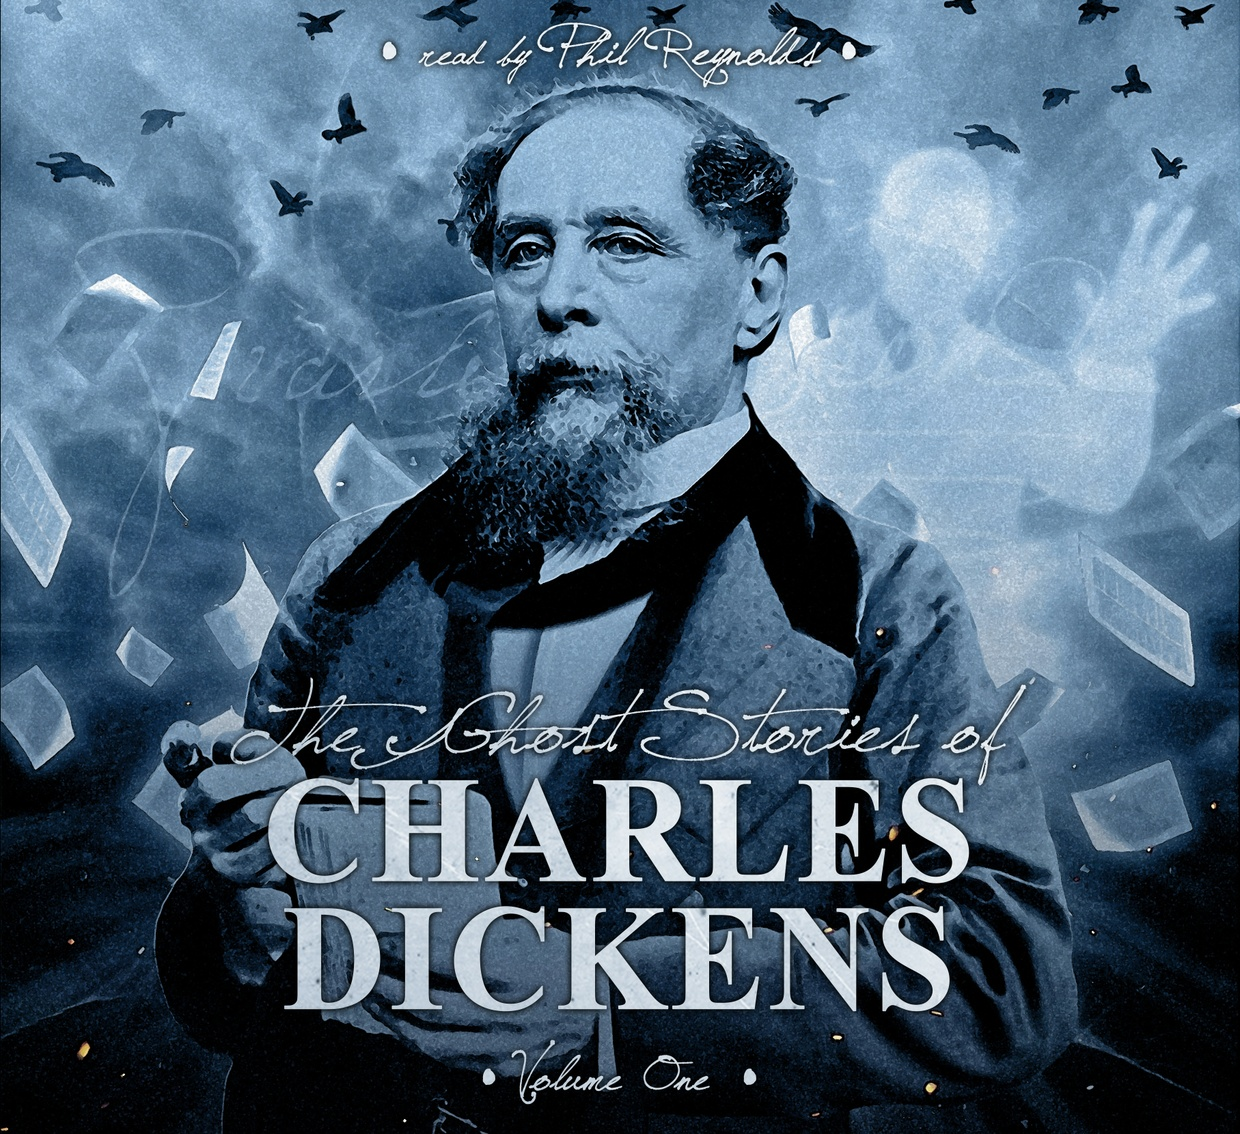 The Ghost Stories of Charles Dickens - Volume One